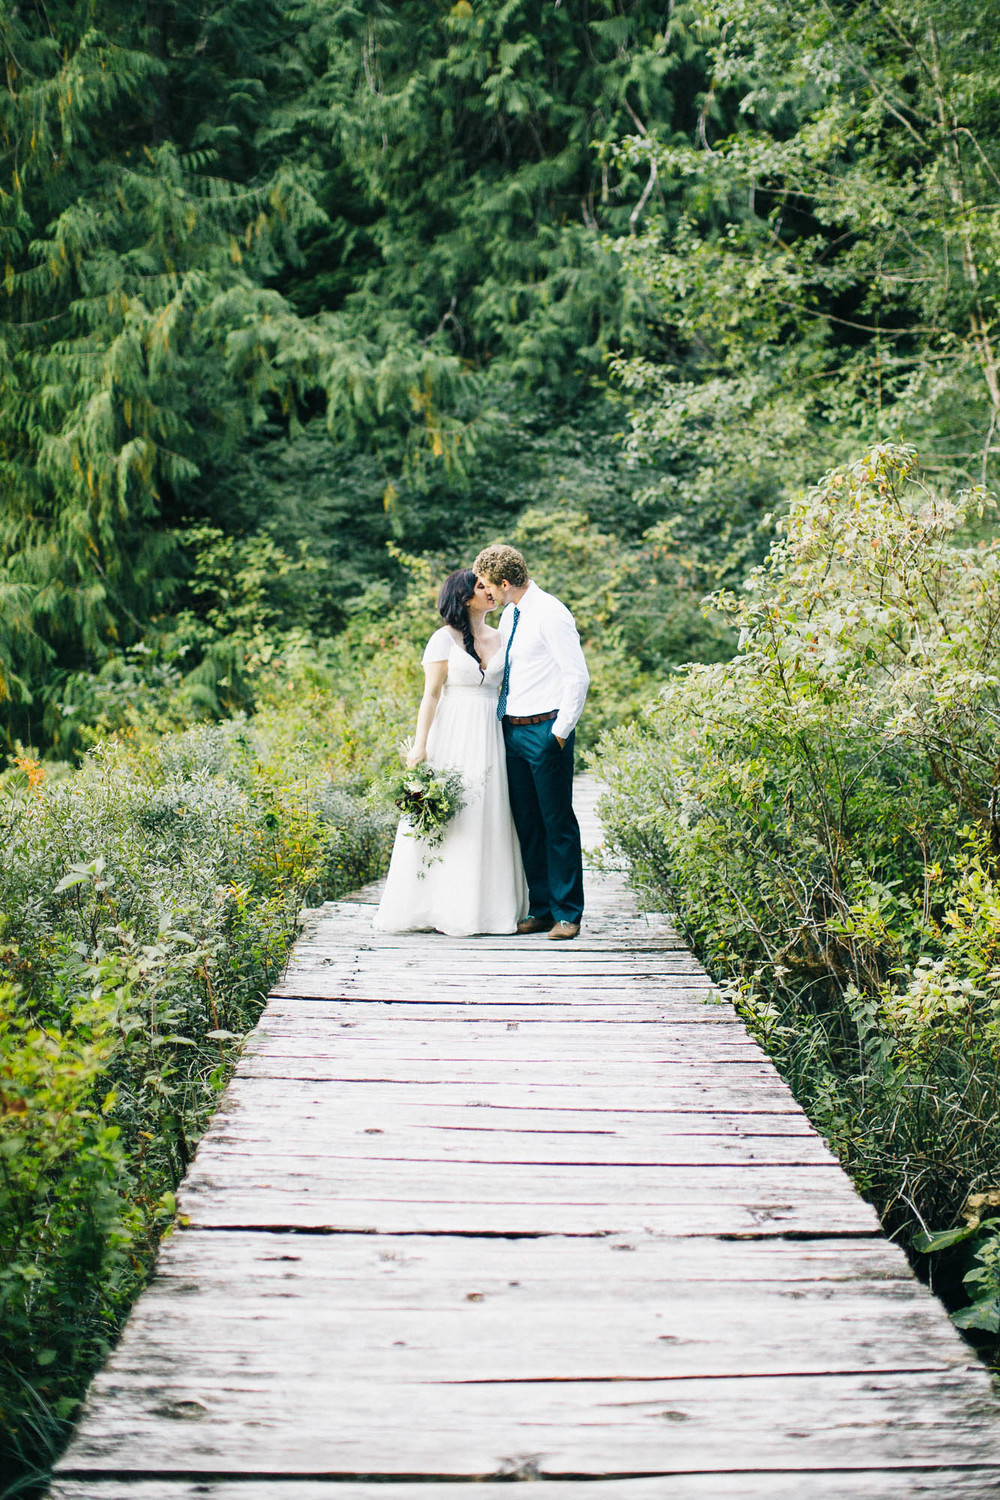 20140920_wedding_best_vancouver_rustic_photographer_photography_squamish__232.jpg